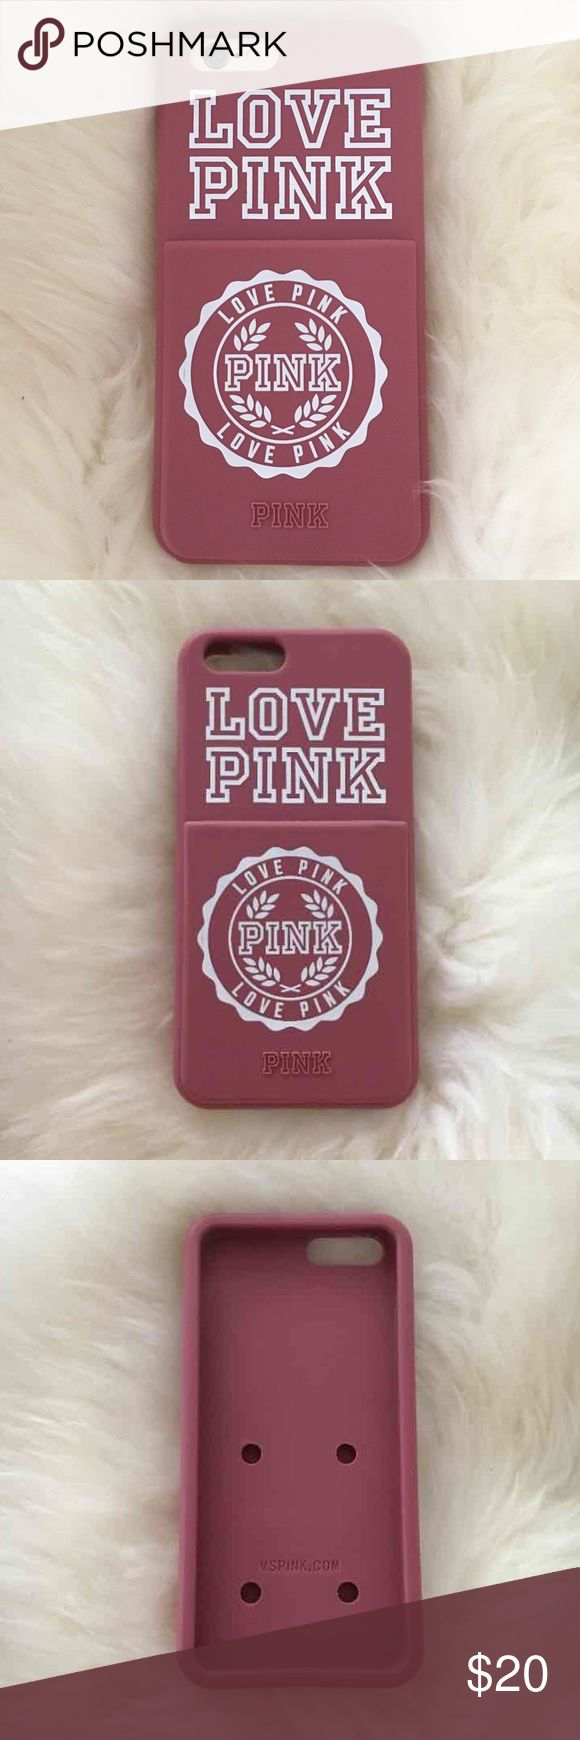 Victoria's Secret Pink iPhone case Vs pink soft begonia iPhone 6/6s case. Has an ID/CC slot, Like new! Cheaper on Ⓜ️ PINK Victoria's Secret Tops